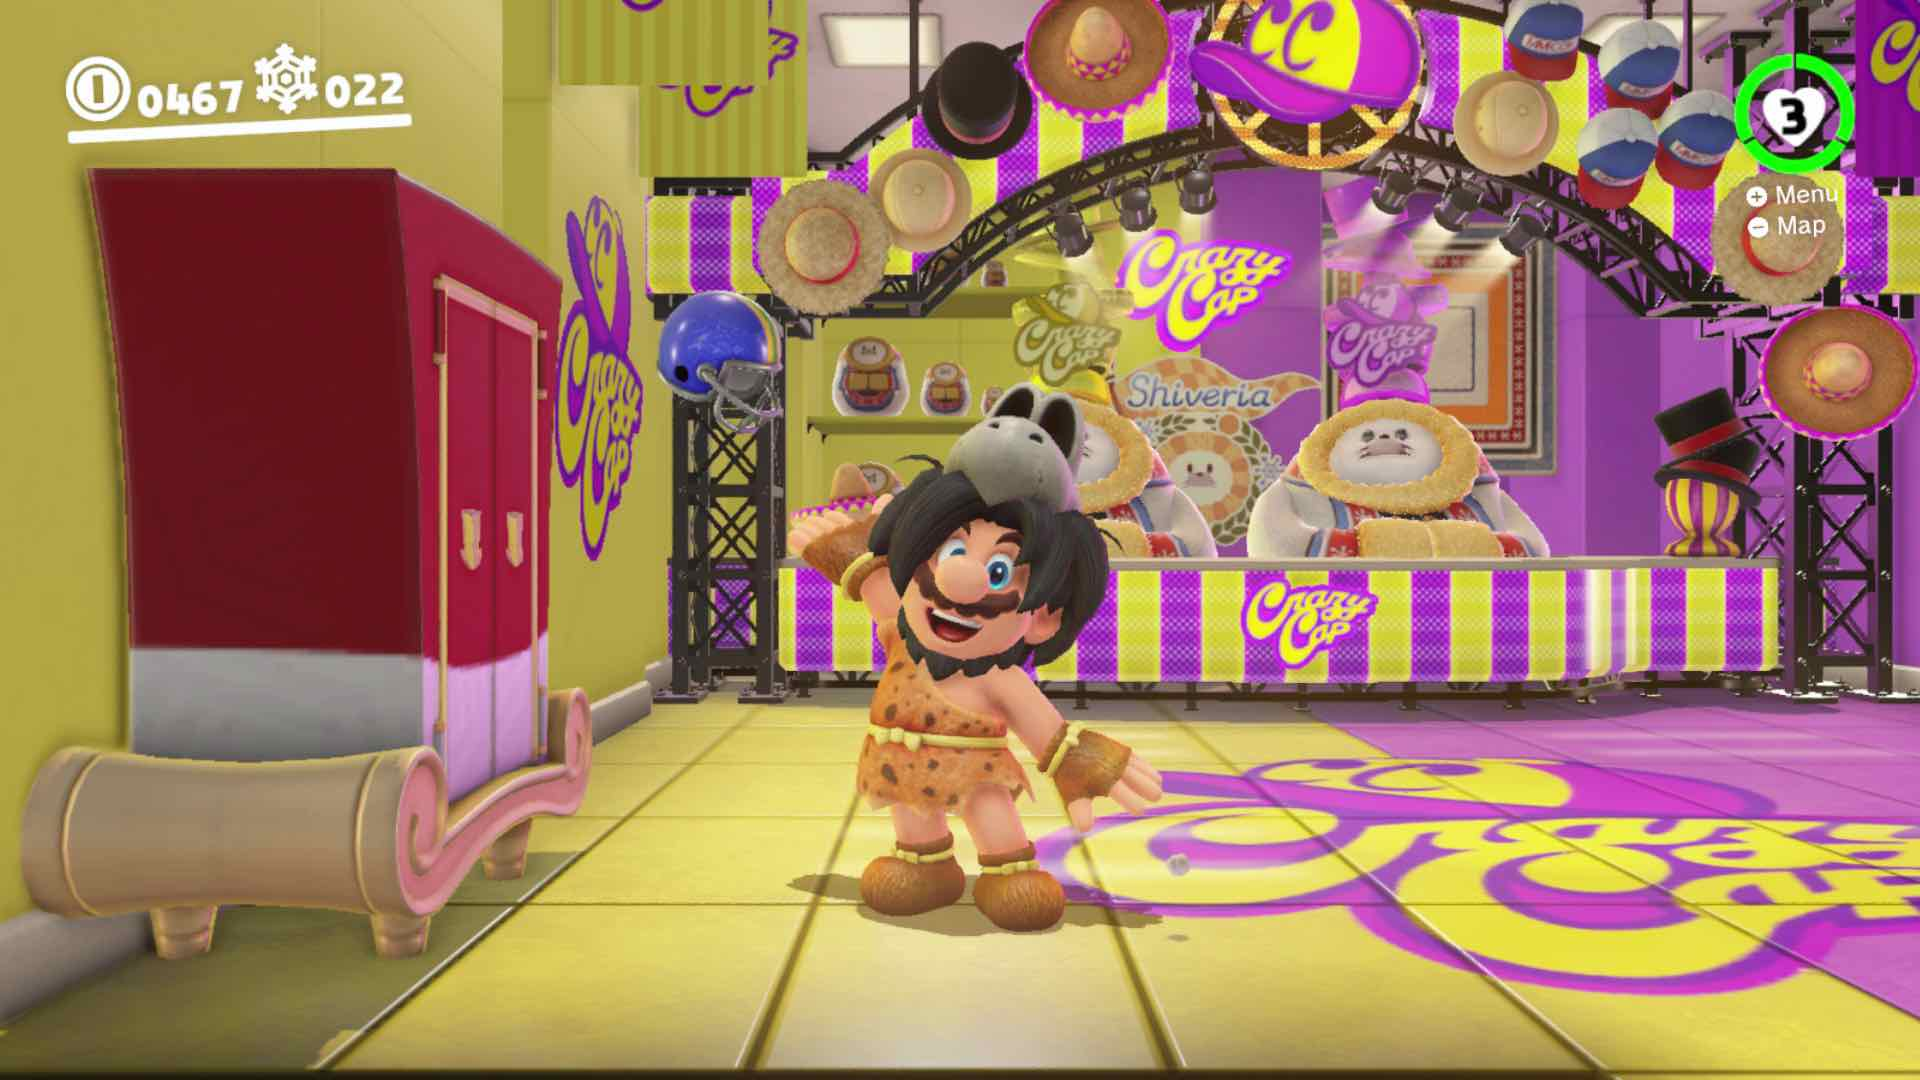 caveman-outfit-super-mario-odyssey-screenshot